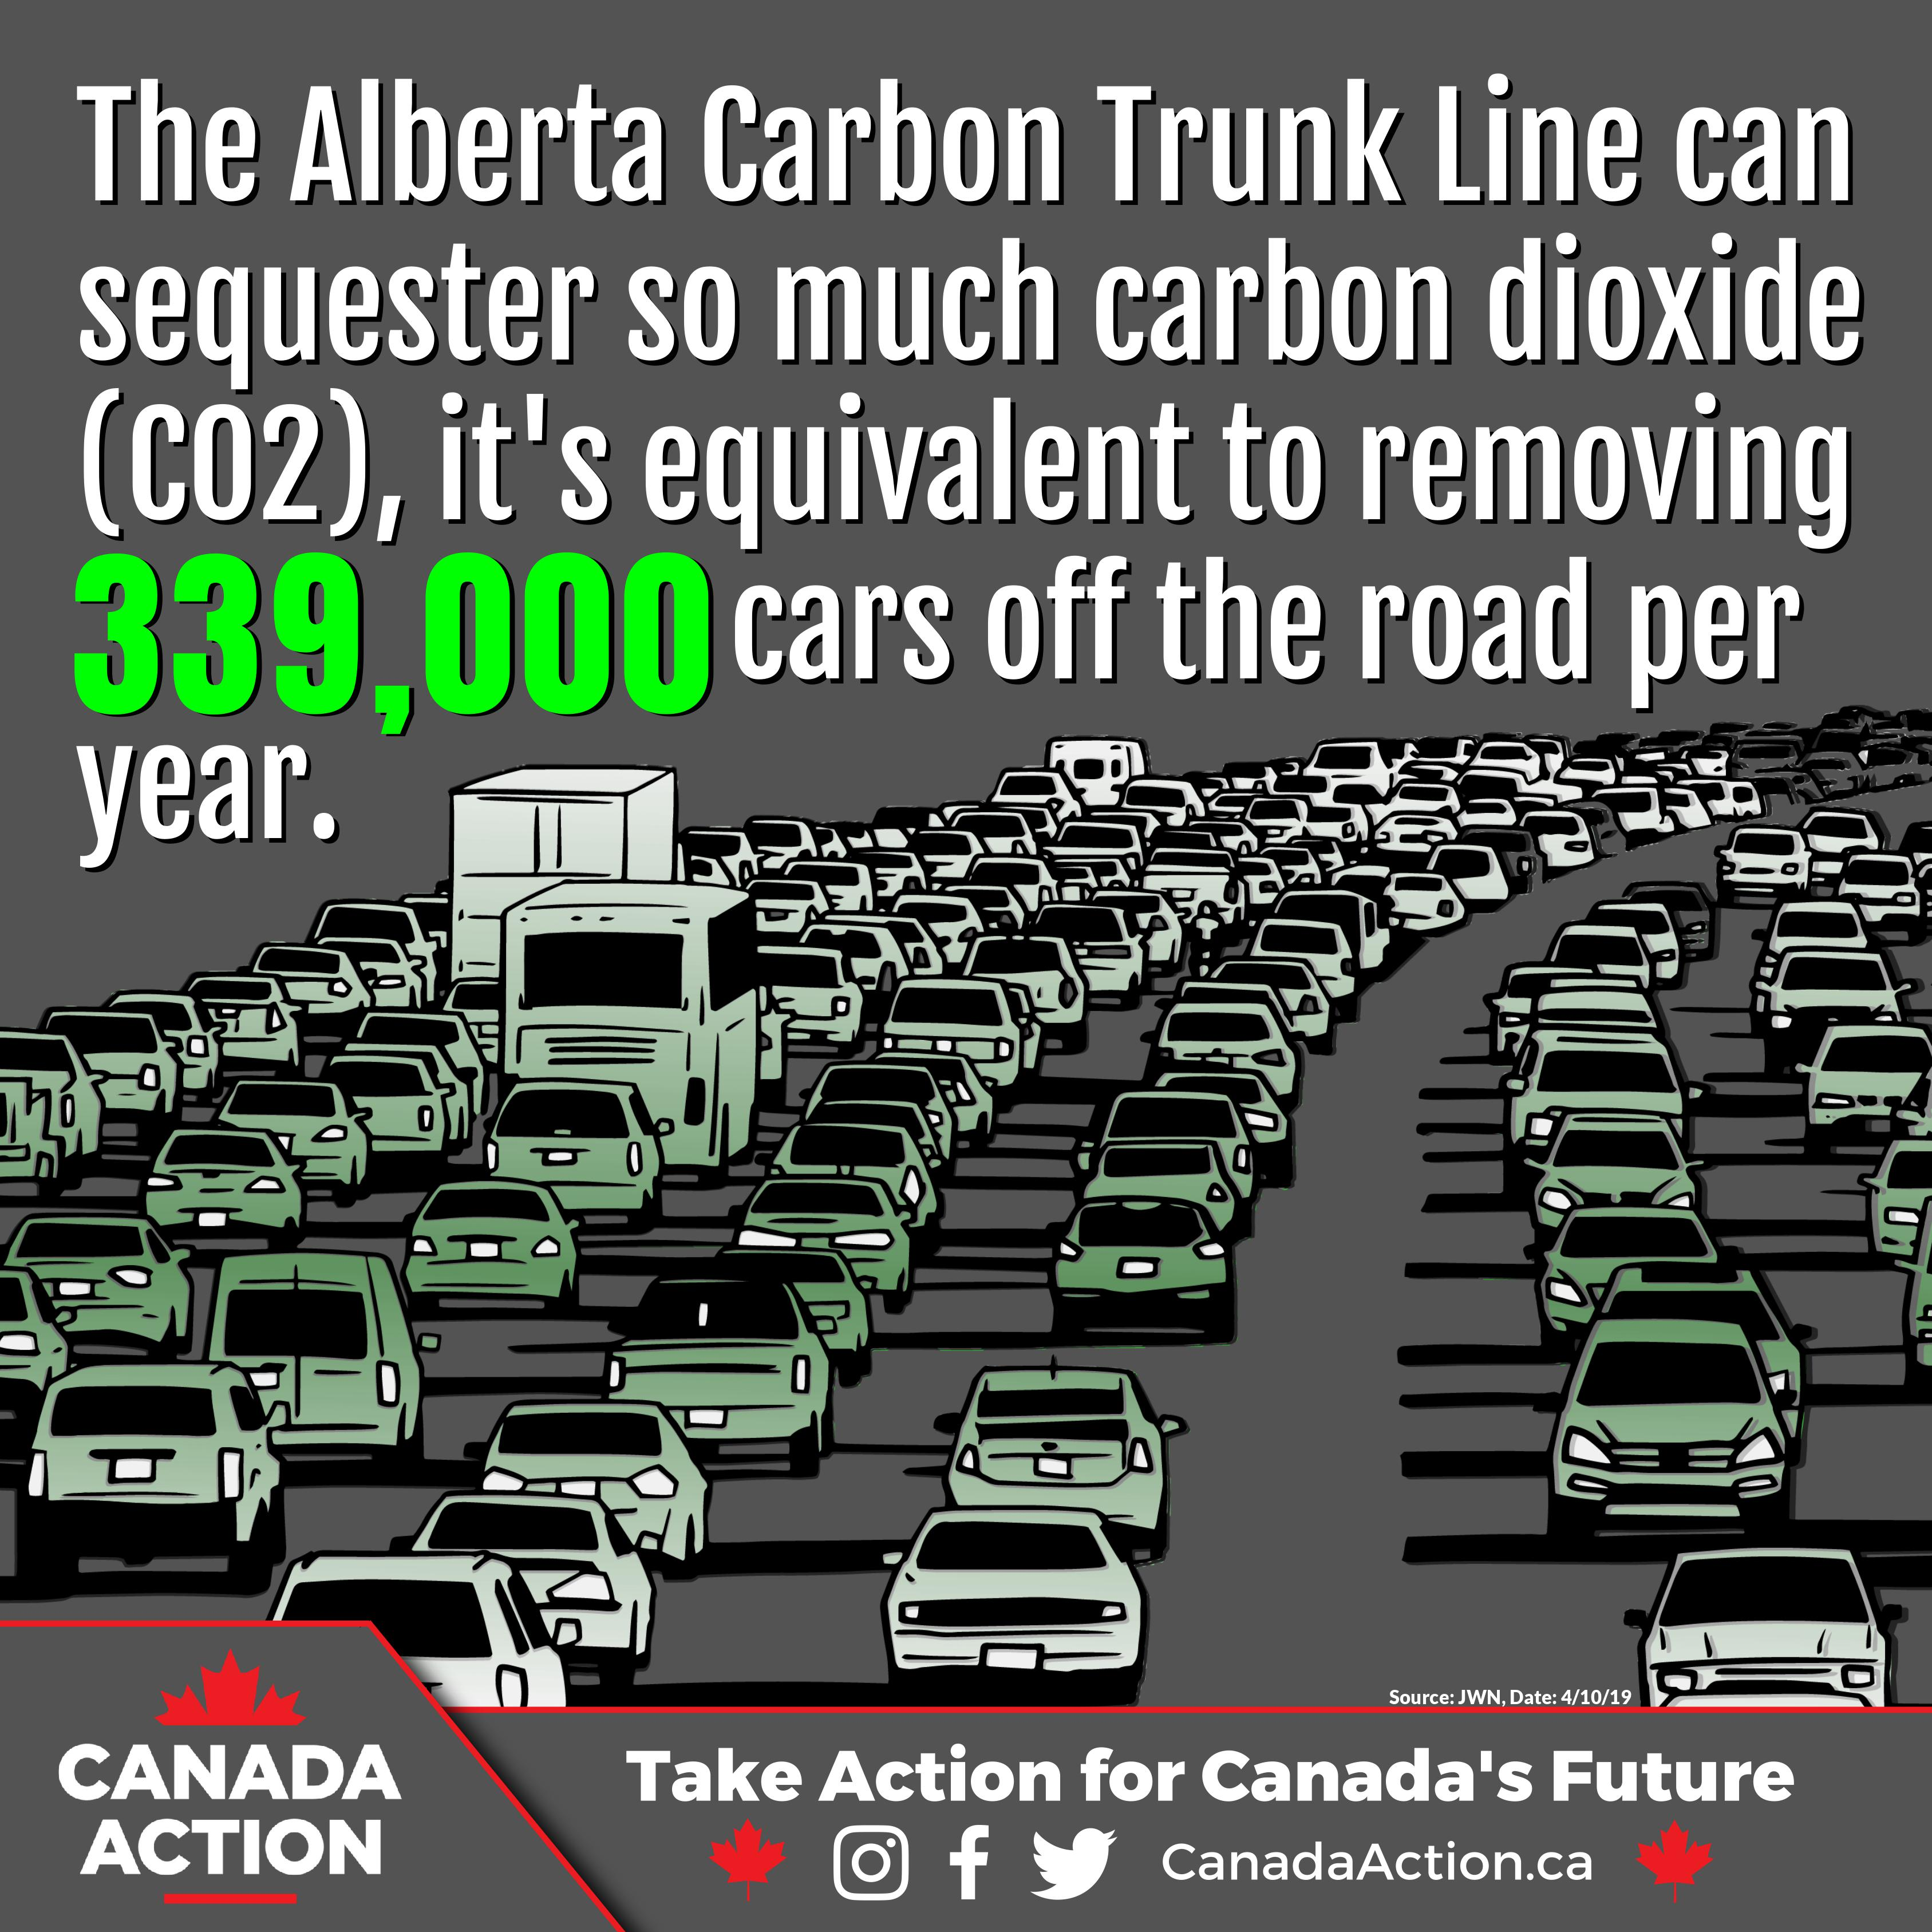 Alberta Carbon Trunk Line (ACTL) - Removes Up to 339,000 Cars of the Road Per Year